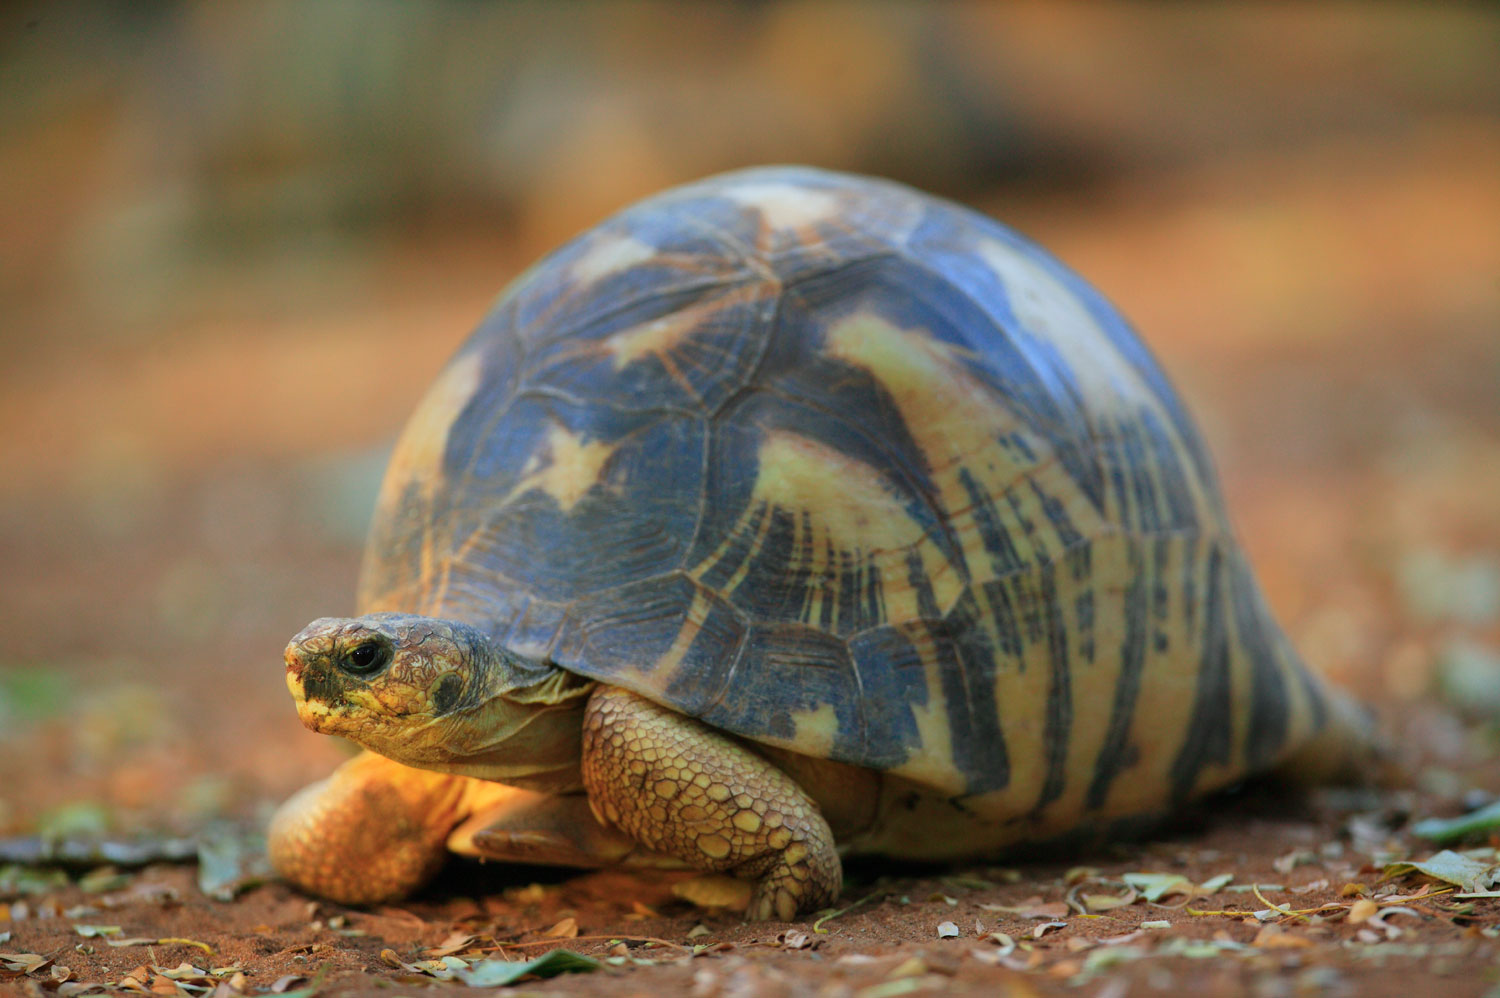 The radiated tortoise of Madagascar is so named for the pattern on its shell. They are now critically endangered.